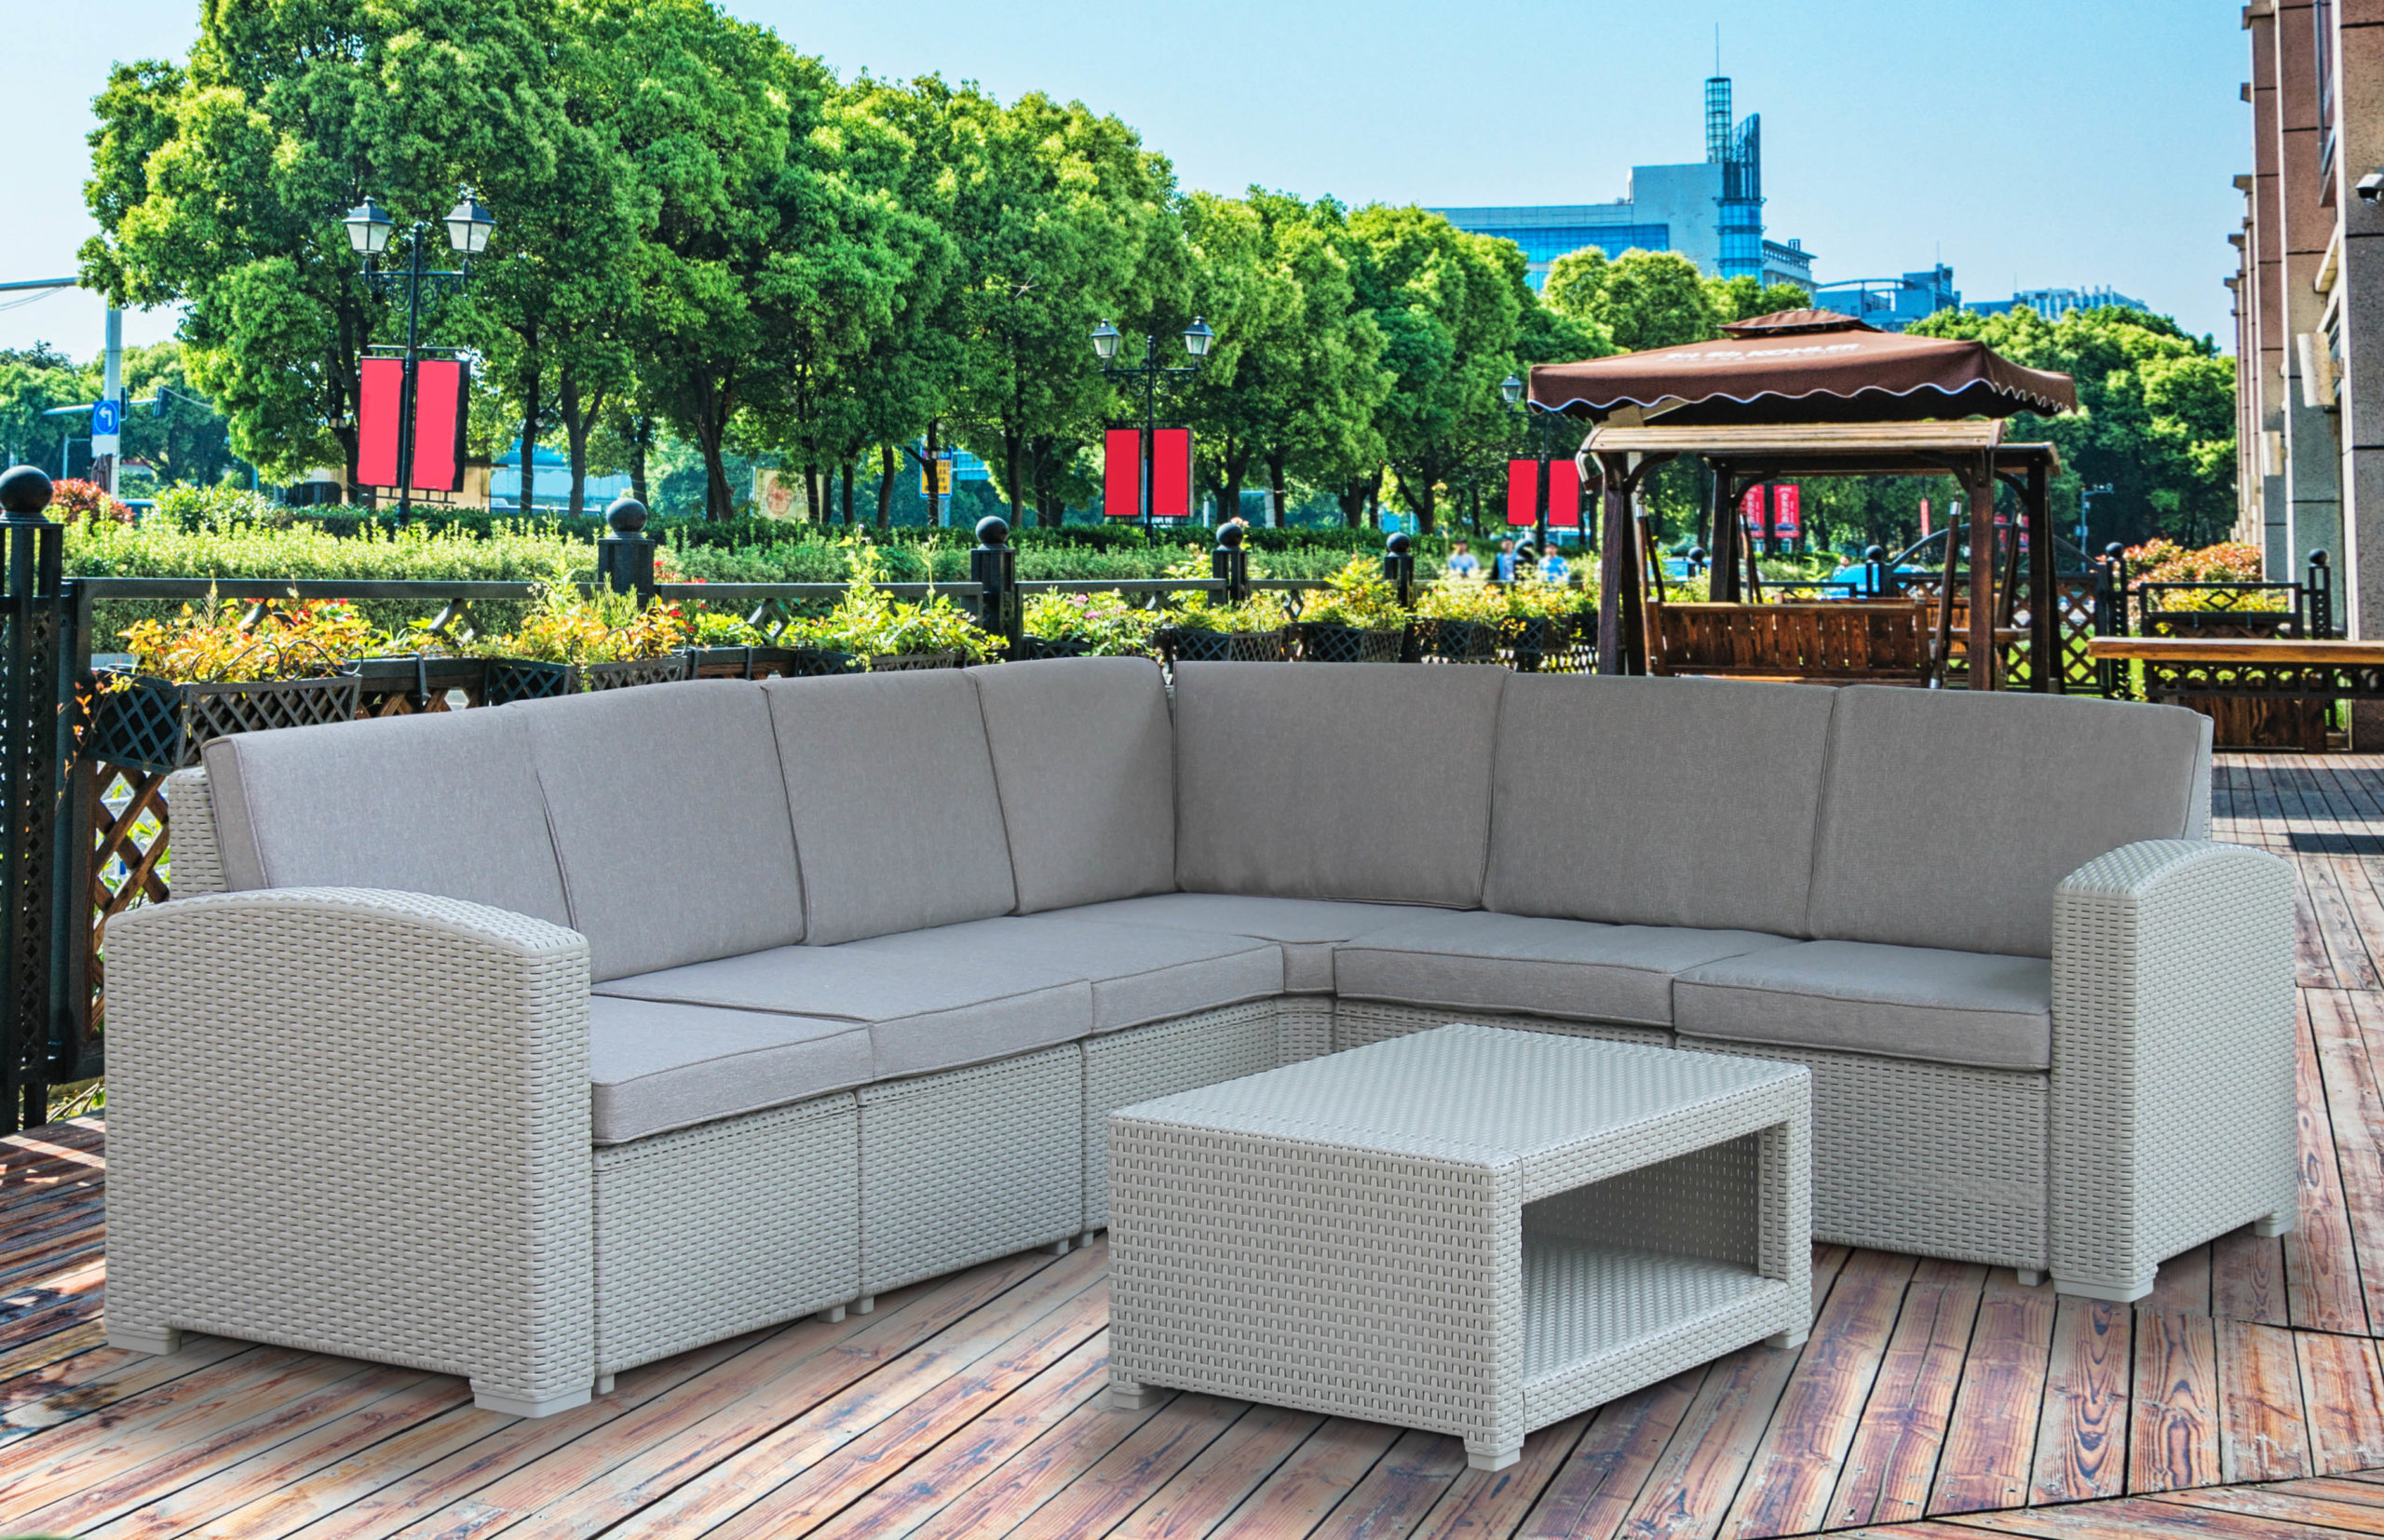 Fine Living - Sanremo Patio set - Calasca Resellers on Fine Living Patio Set id=66694